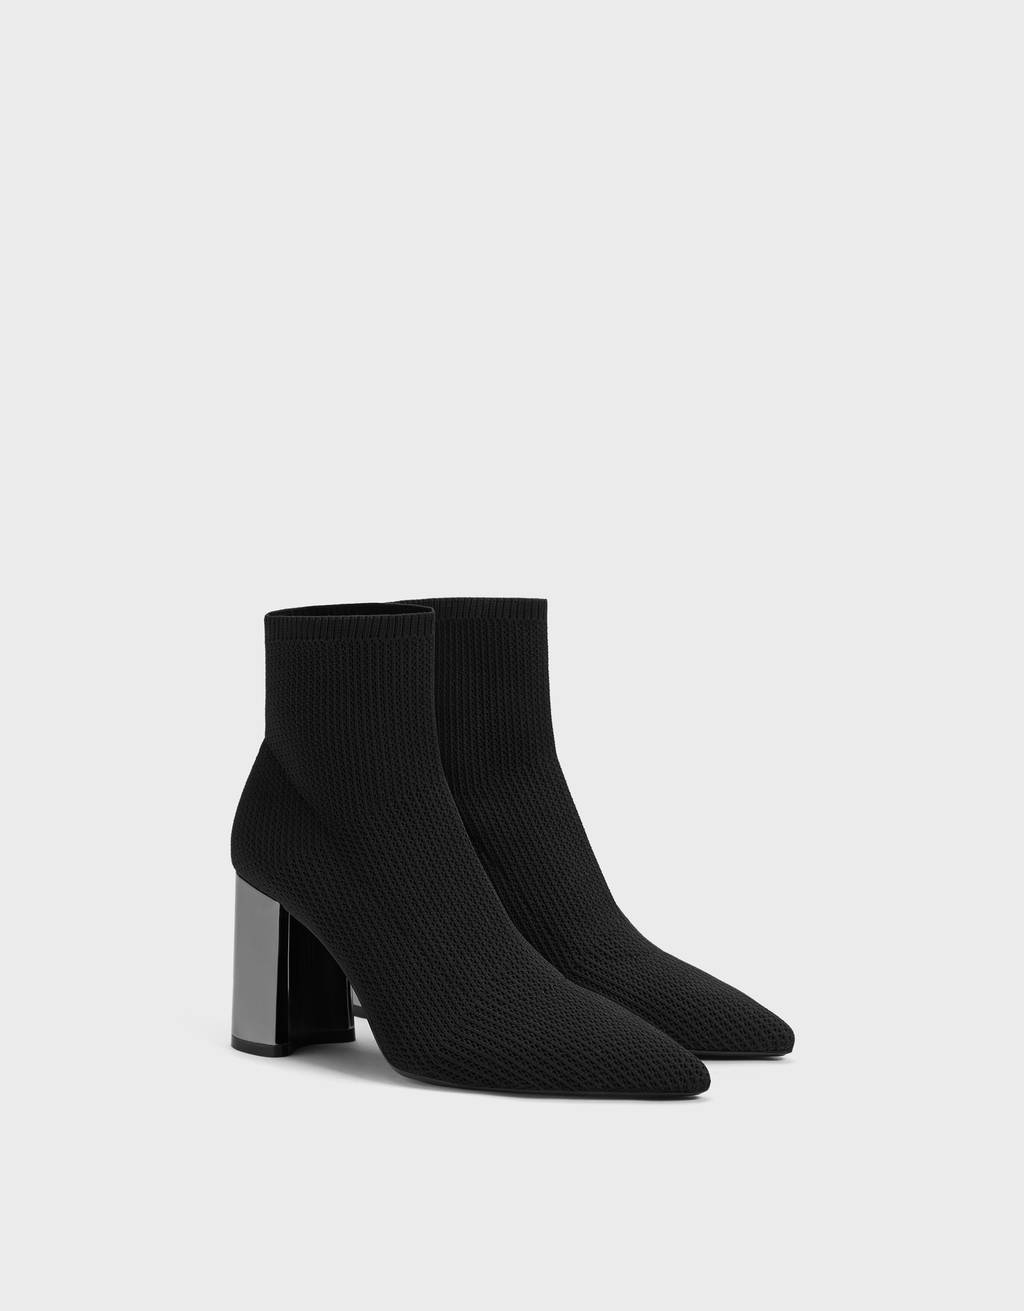 High-heel sock-style ankle boots